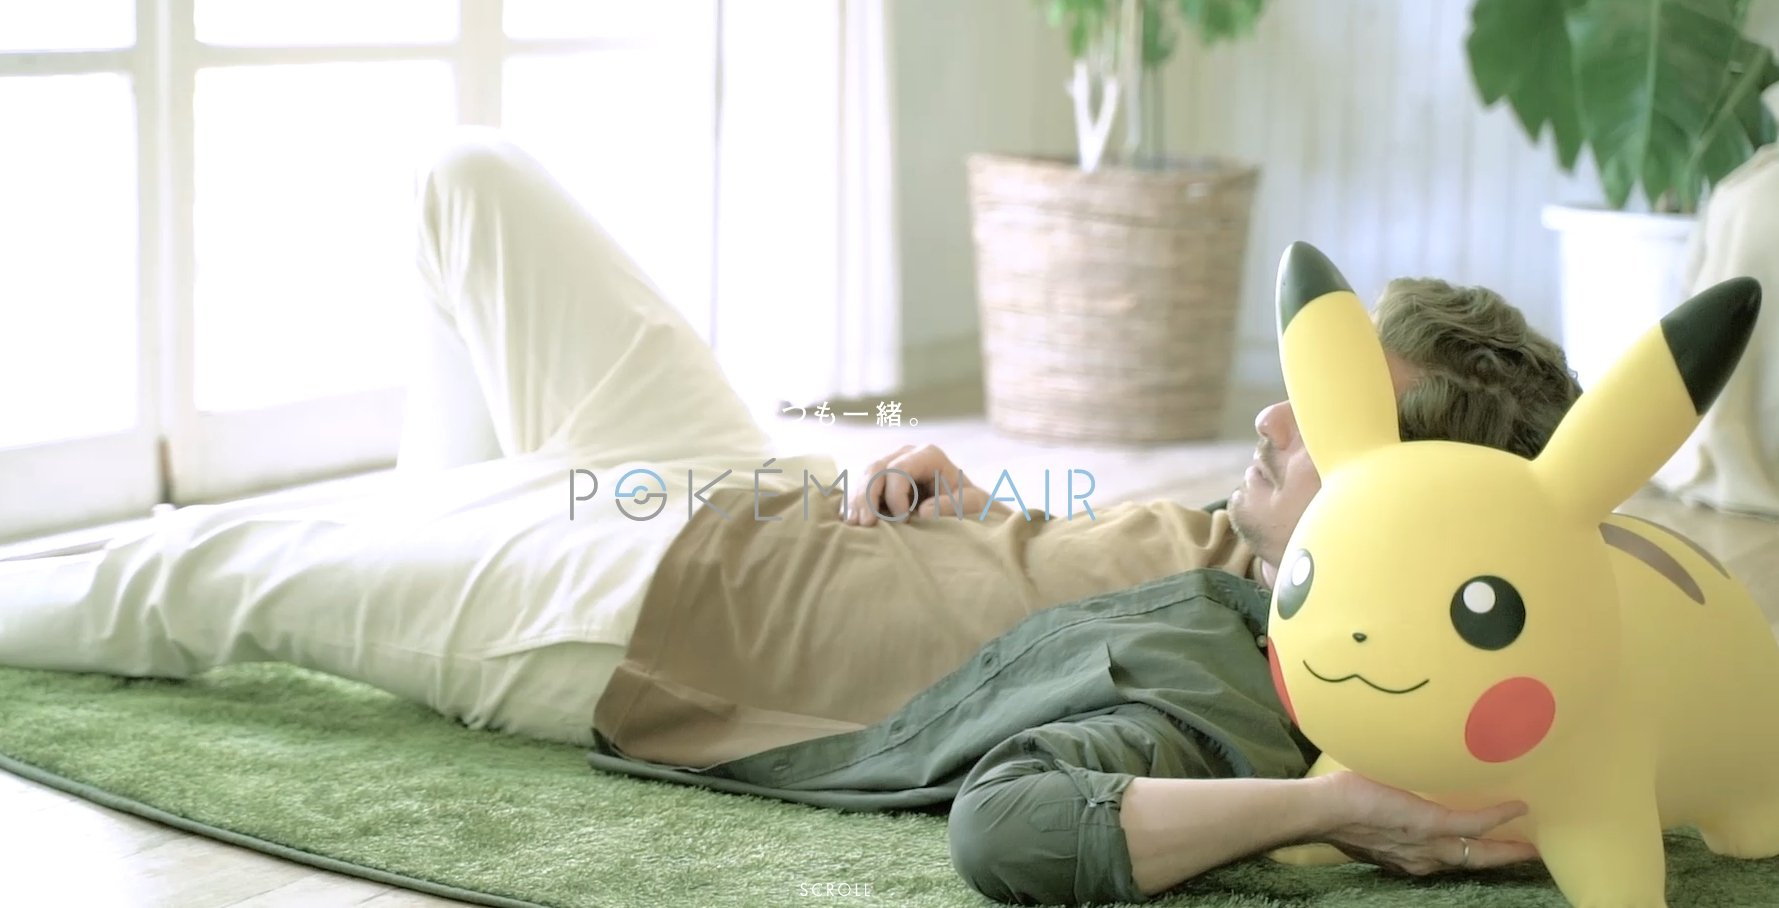 Jam Store Announces Pikachu Pokémon Air Toy To Use As A Chair Or Decorative Item